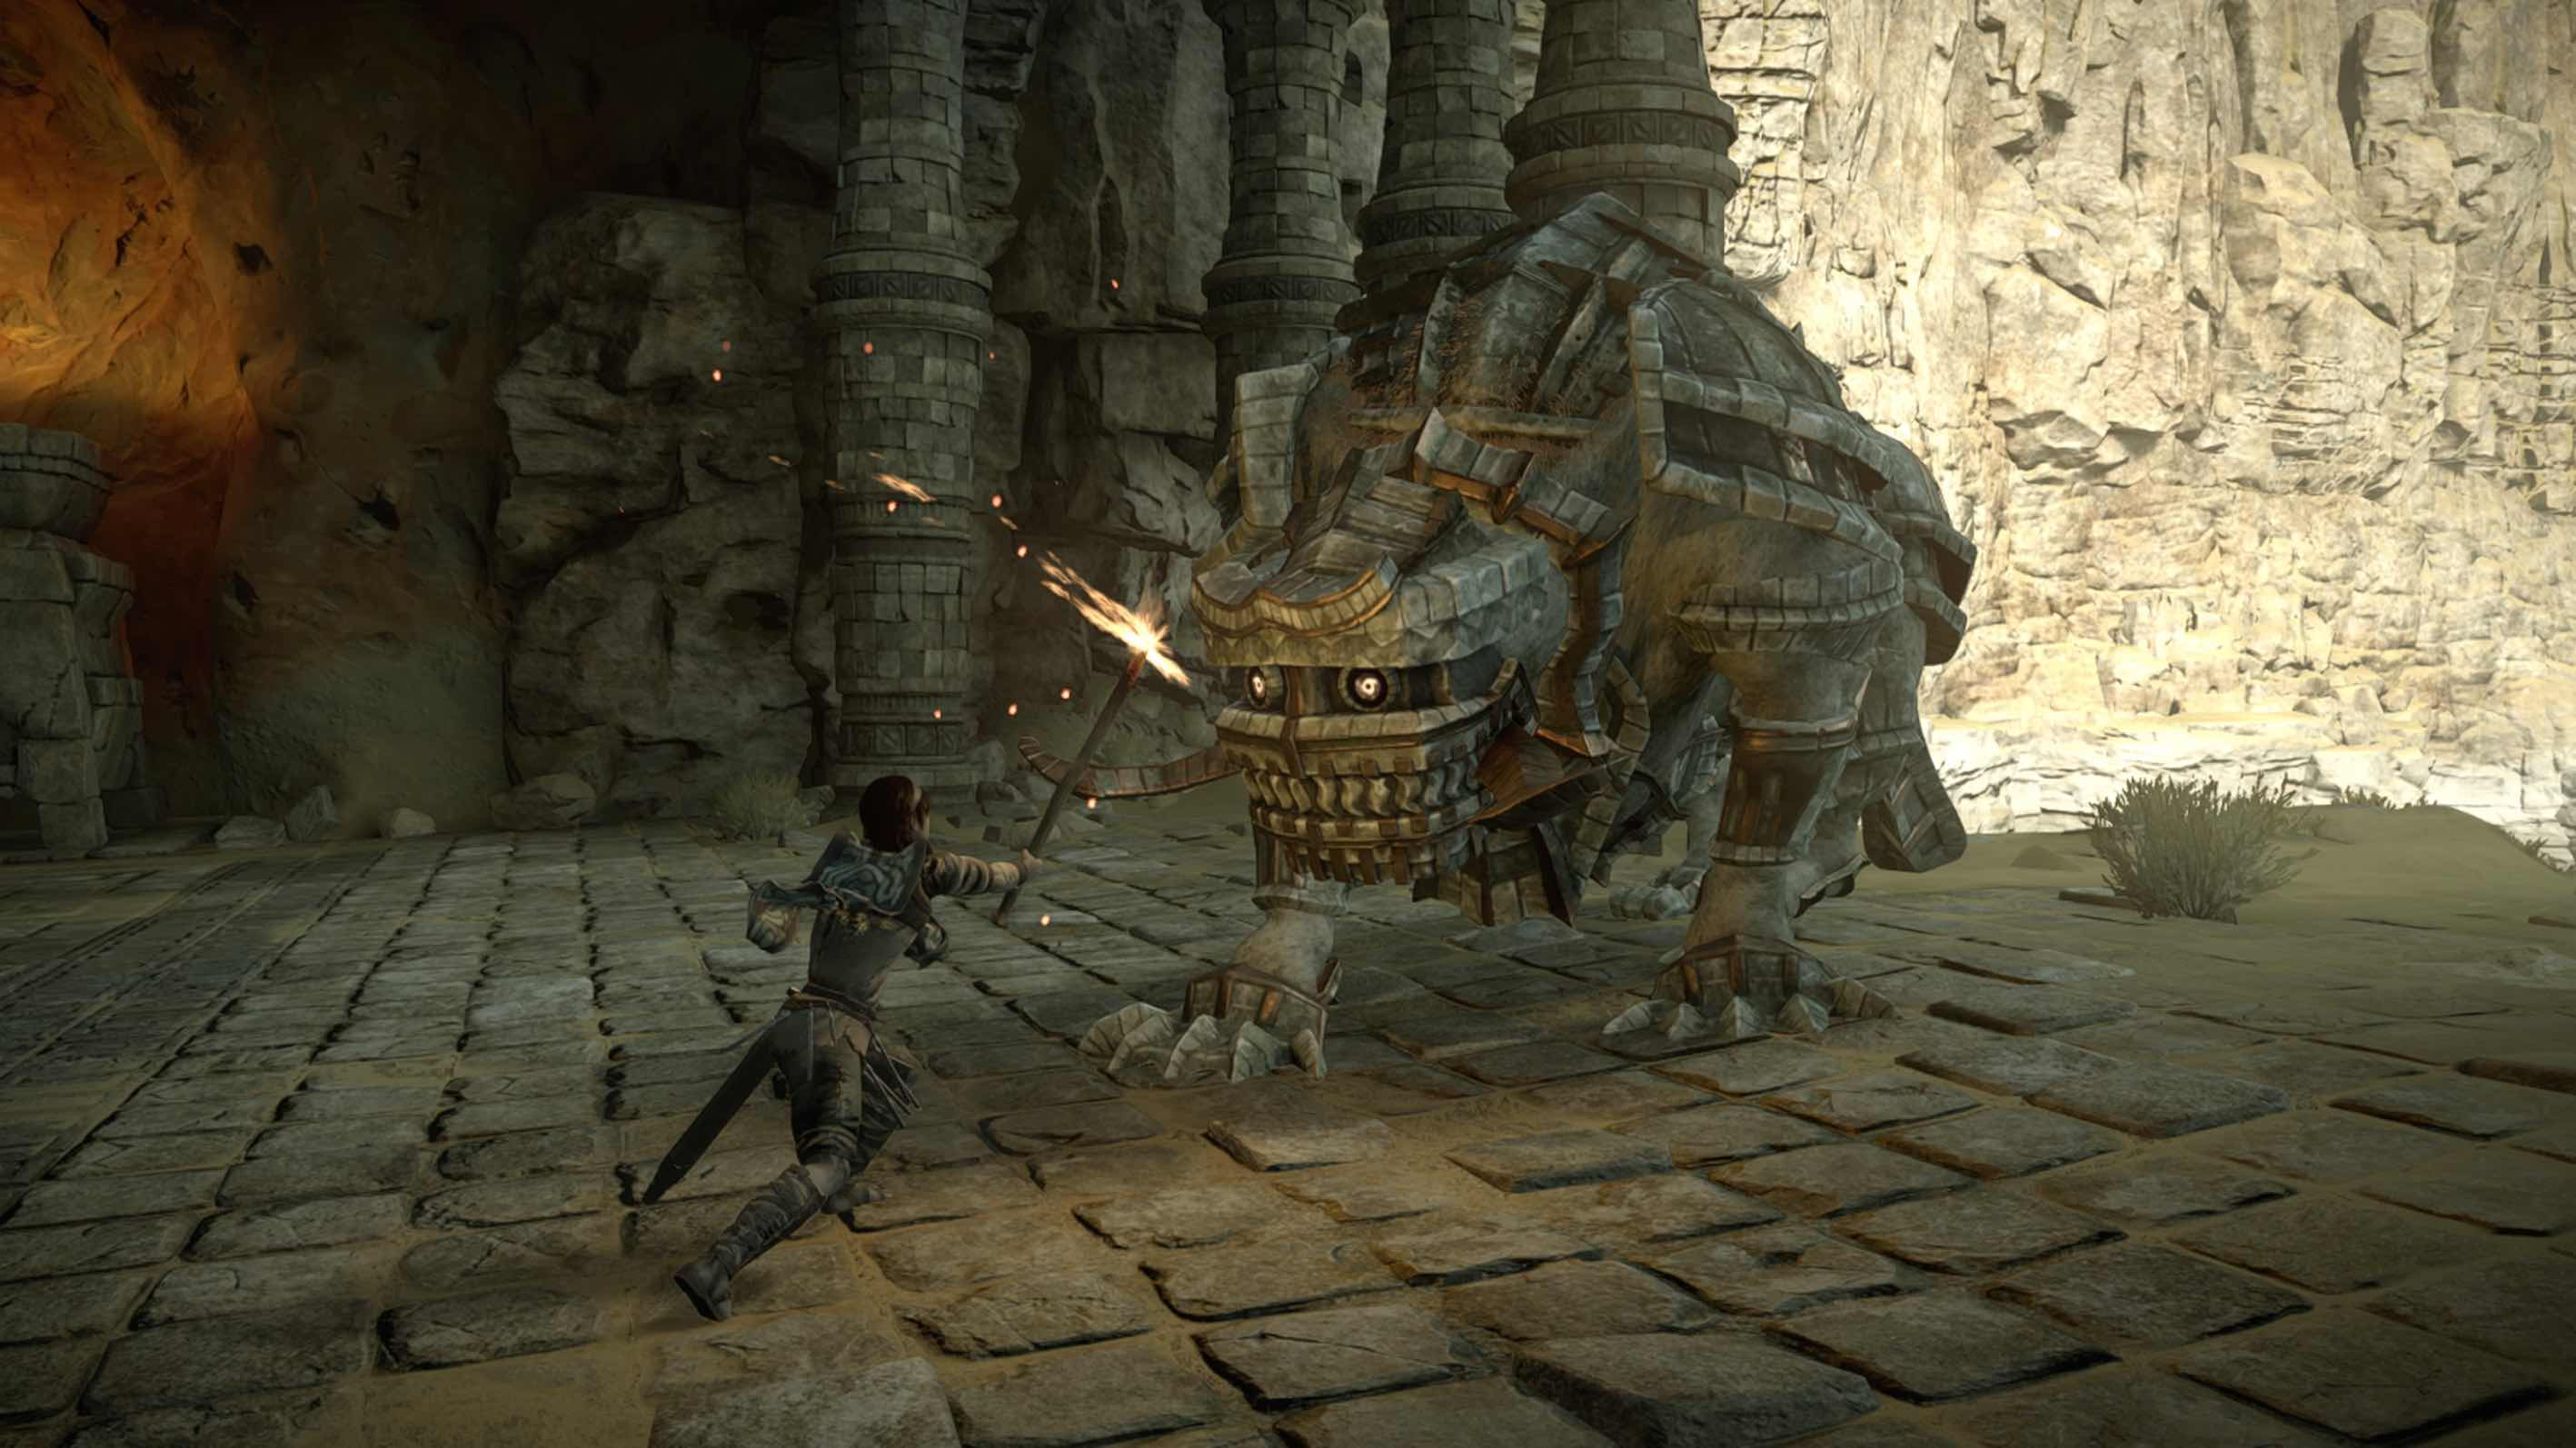 Shadow_of_the_Colossus_Coloso_11_4